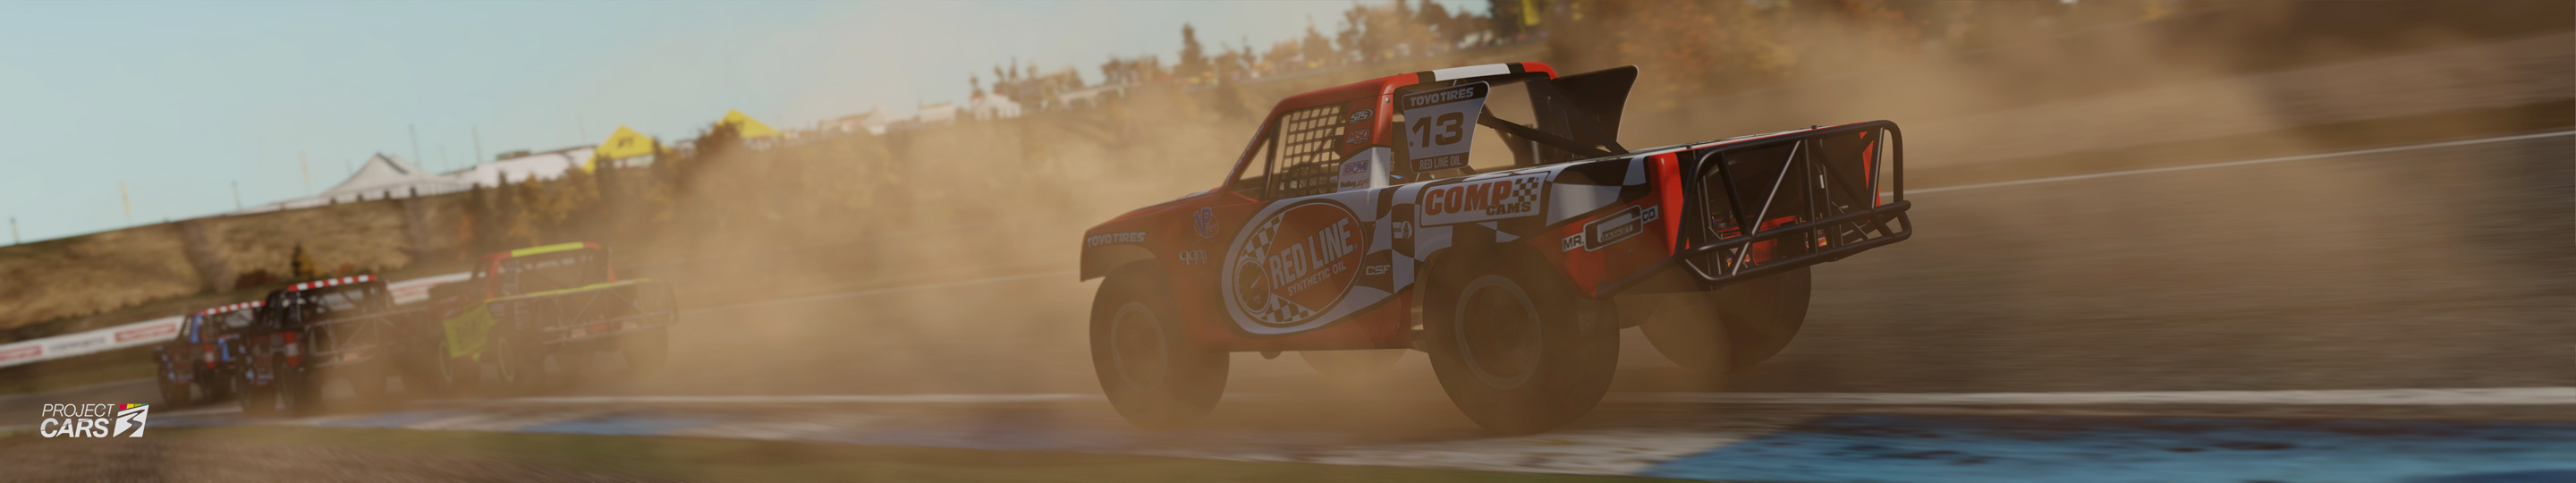 0 PROJECT CARS 3 SUPER TRUCK at KNOCKHILL copy.jpg